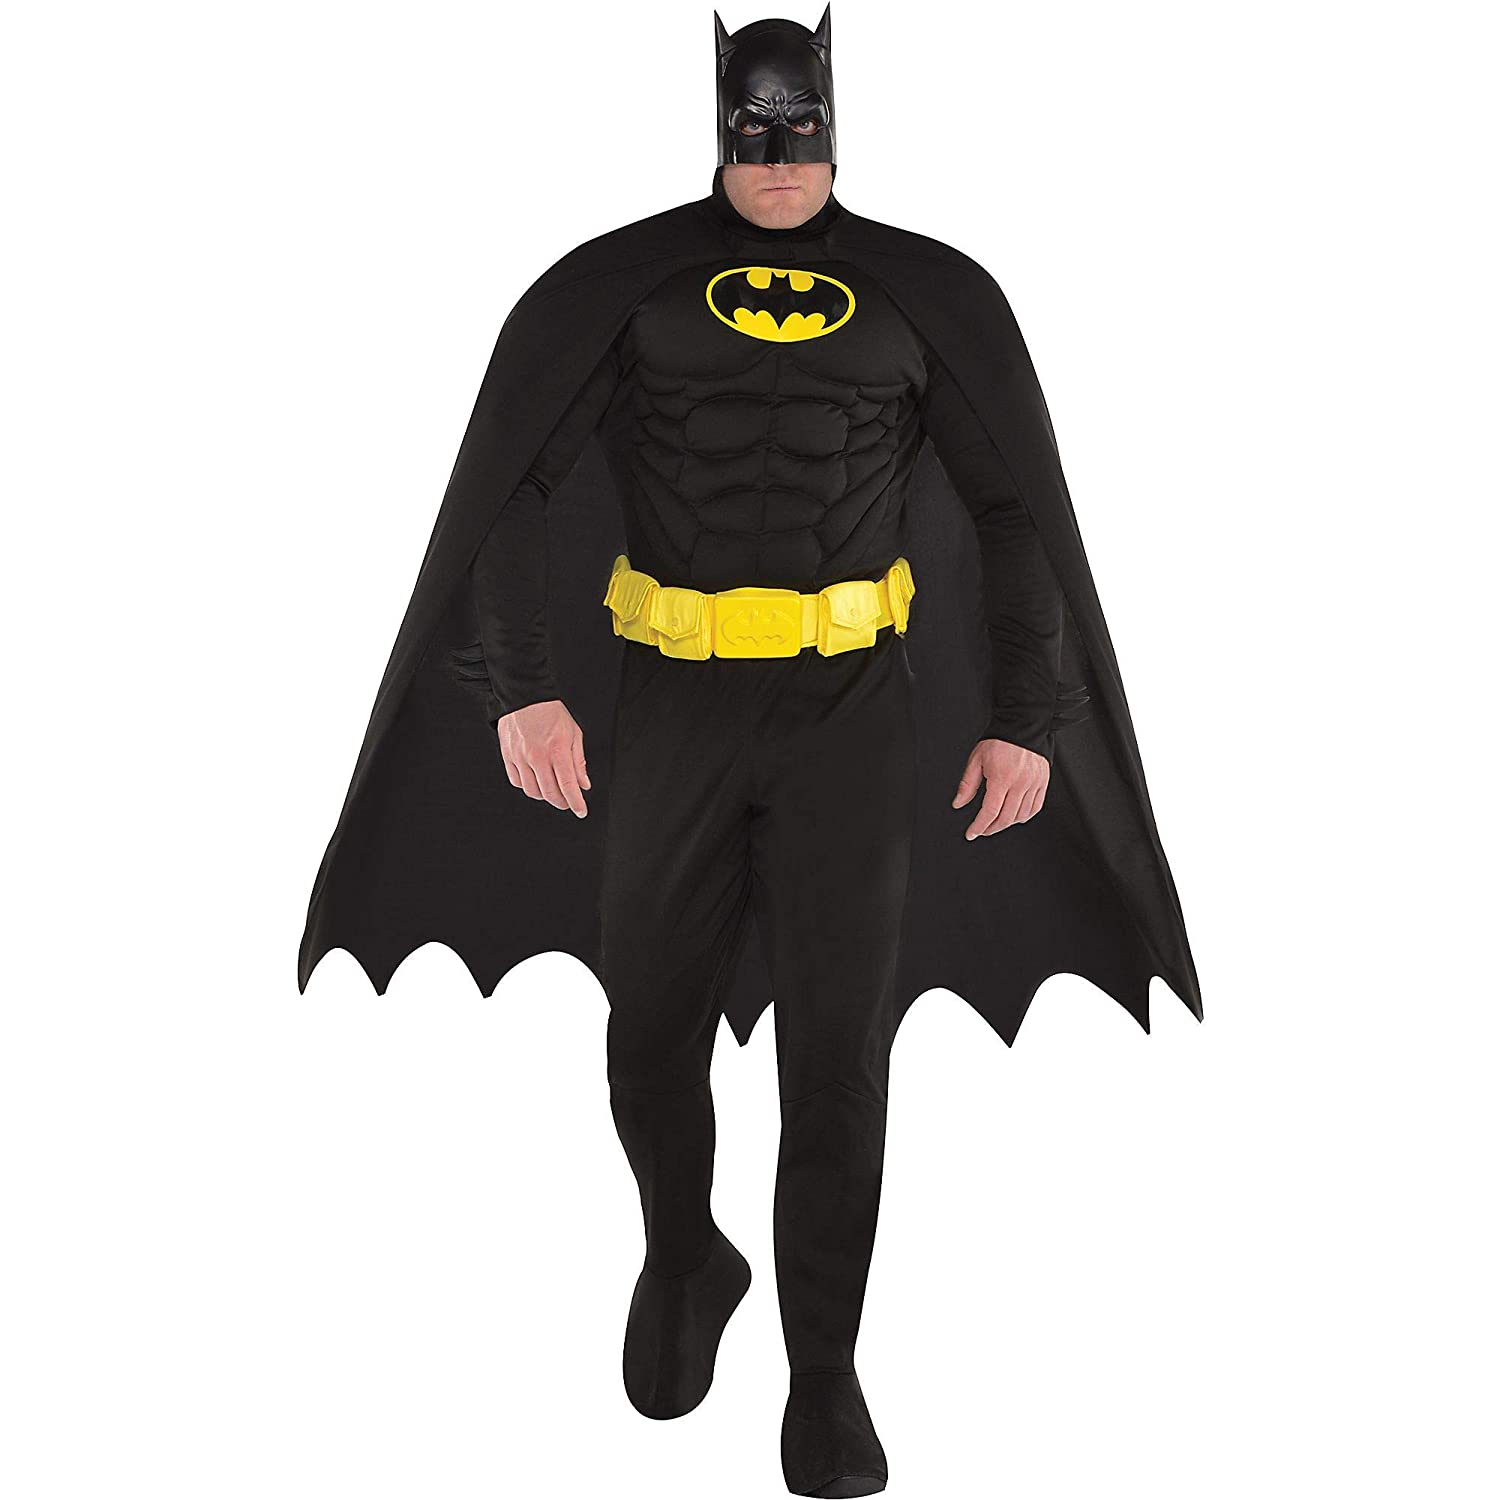 Costumes USA Batman Muscle Costume for Adults, Plus Size, Includes a Padded Jumpsuit, a Mask, and Attached Boot Covers